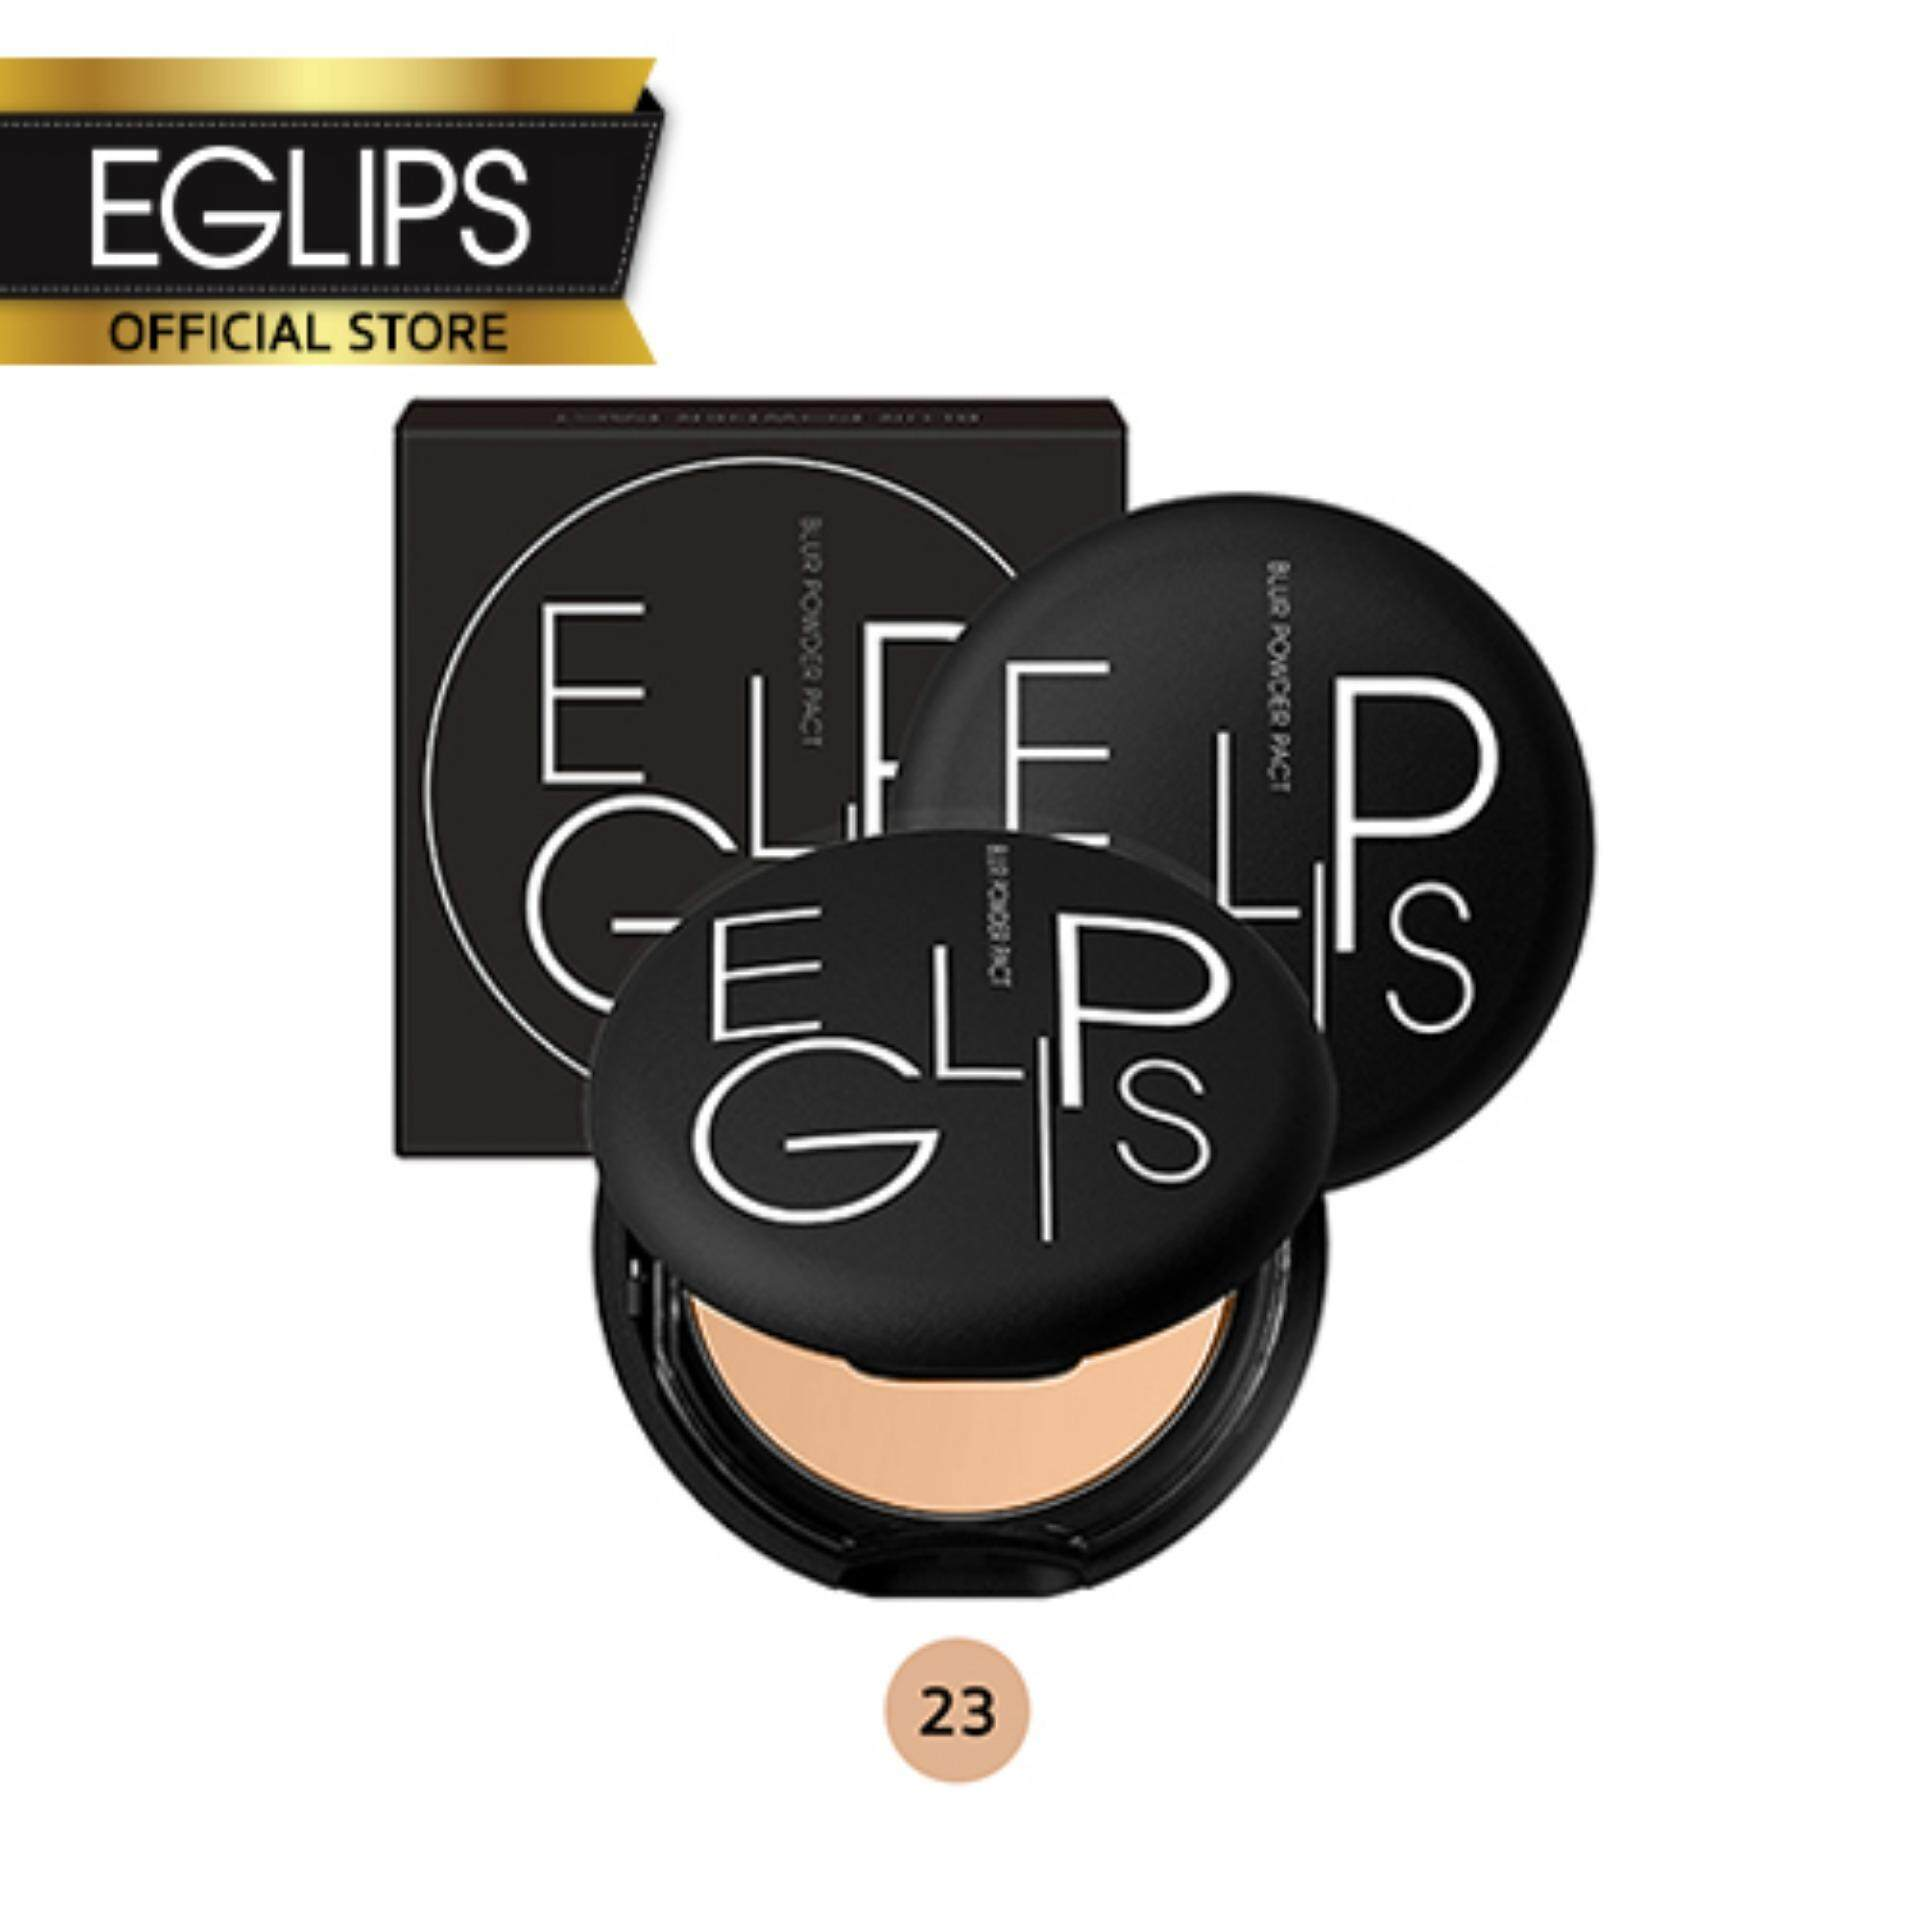 Eglips Blur Powder Pact - 23